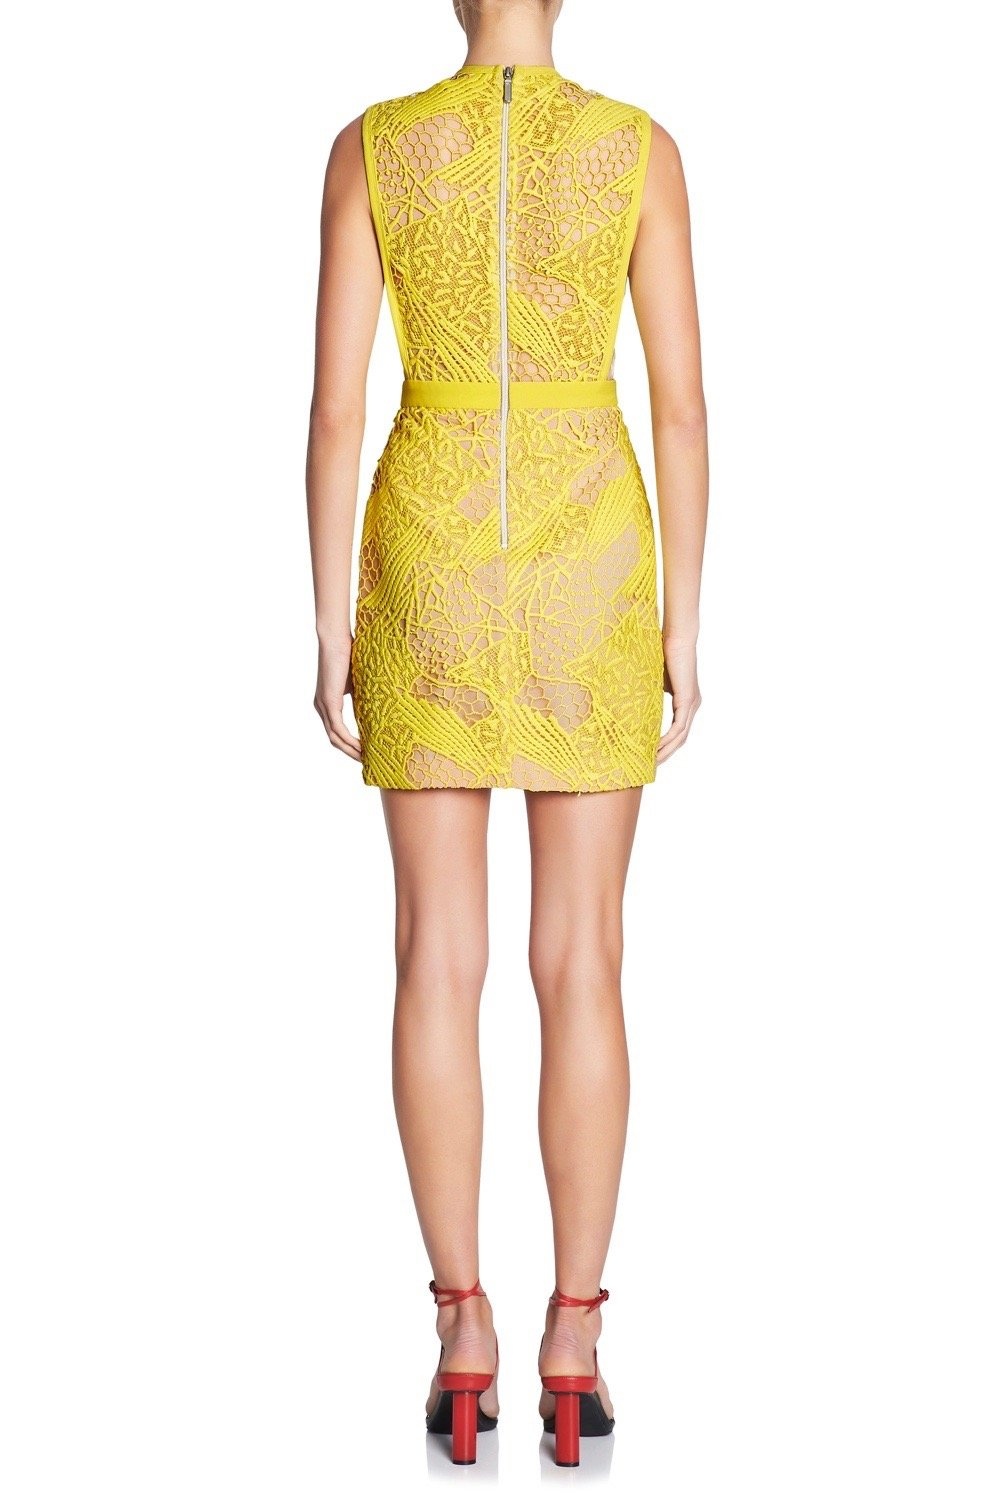 Manning Cartell Gallery View Mini Dress